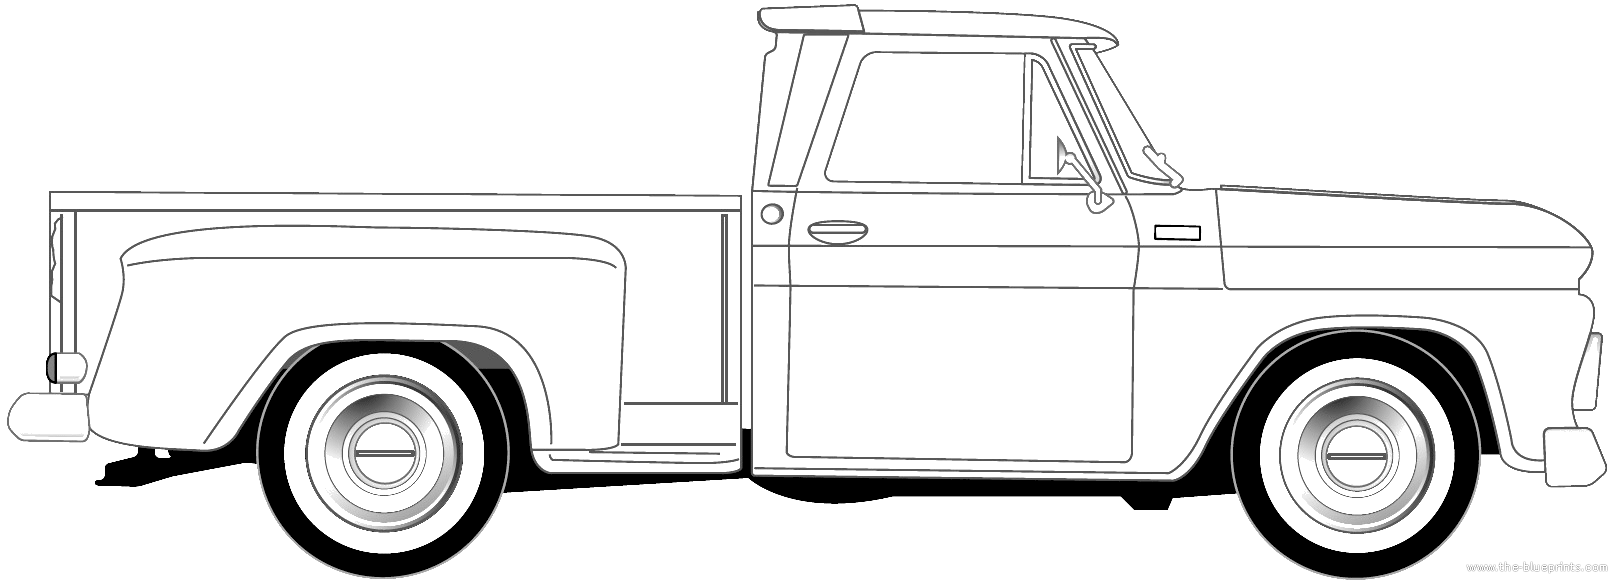 1966 chevy truck bed diagram